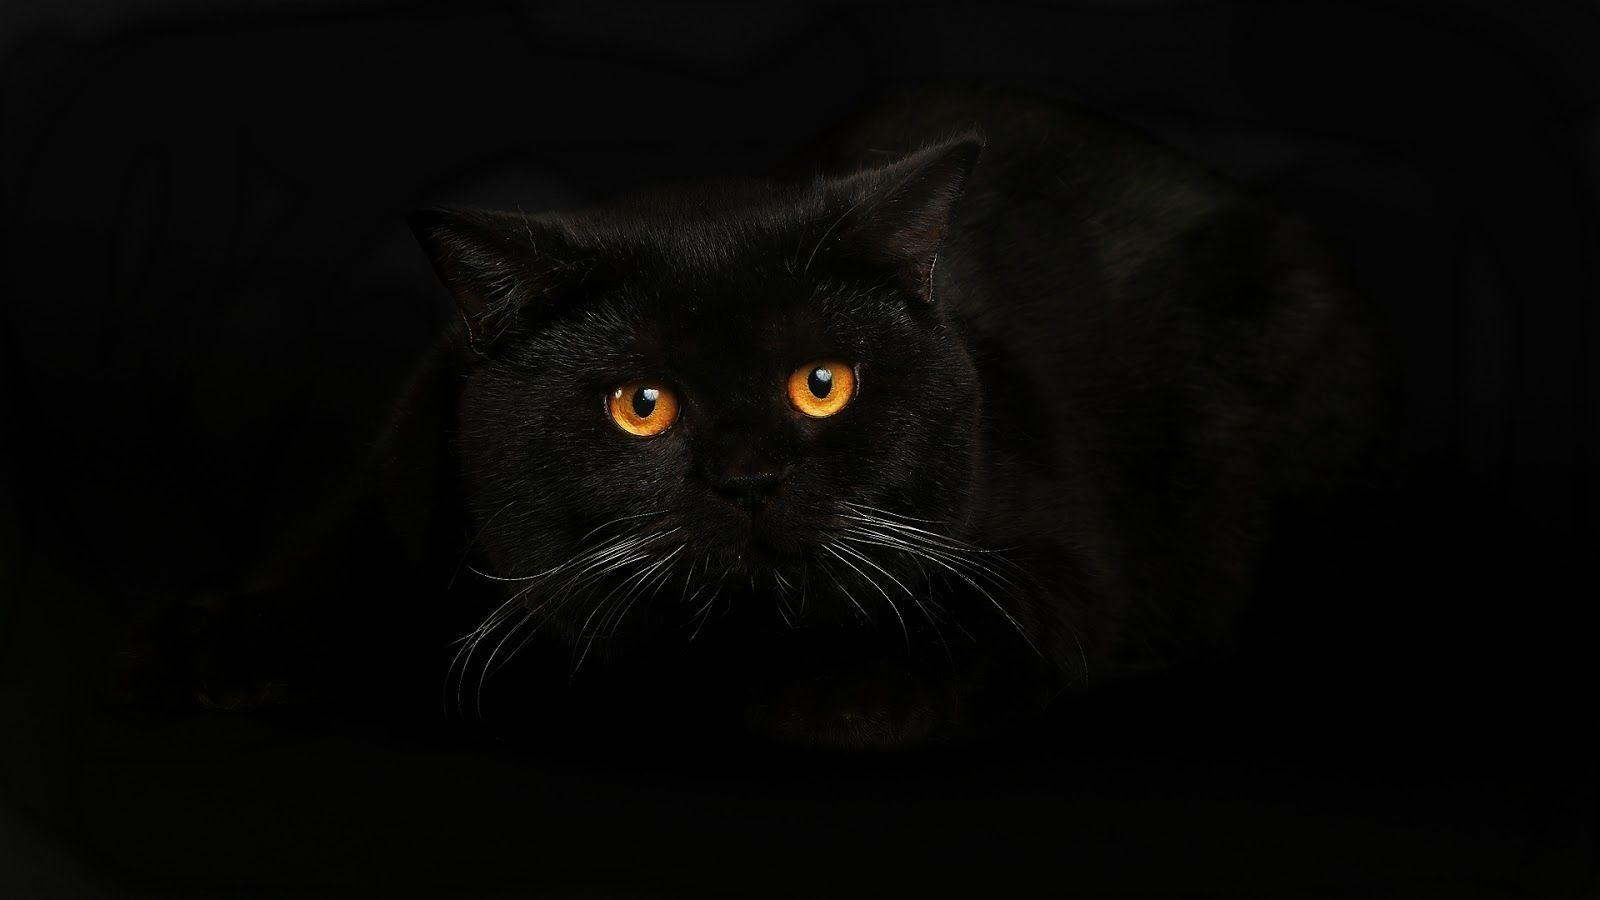 Black Cat Wallpaper Zedge